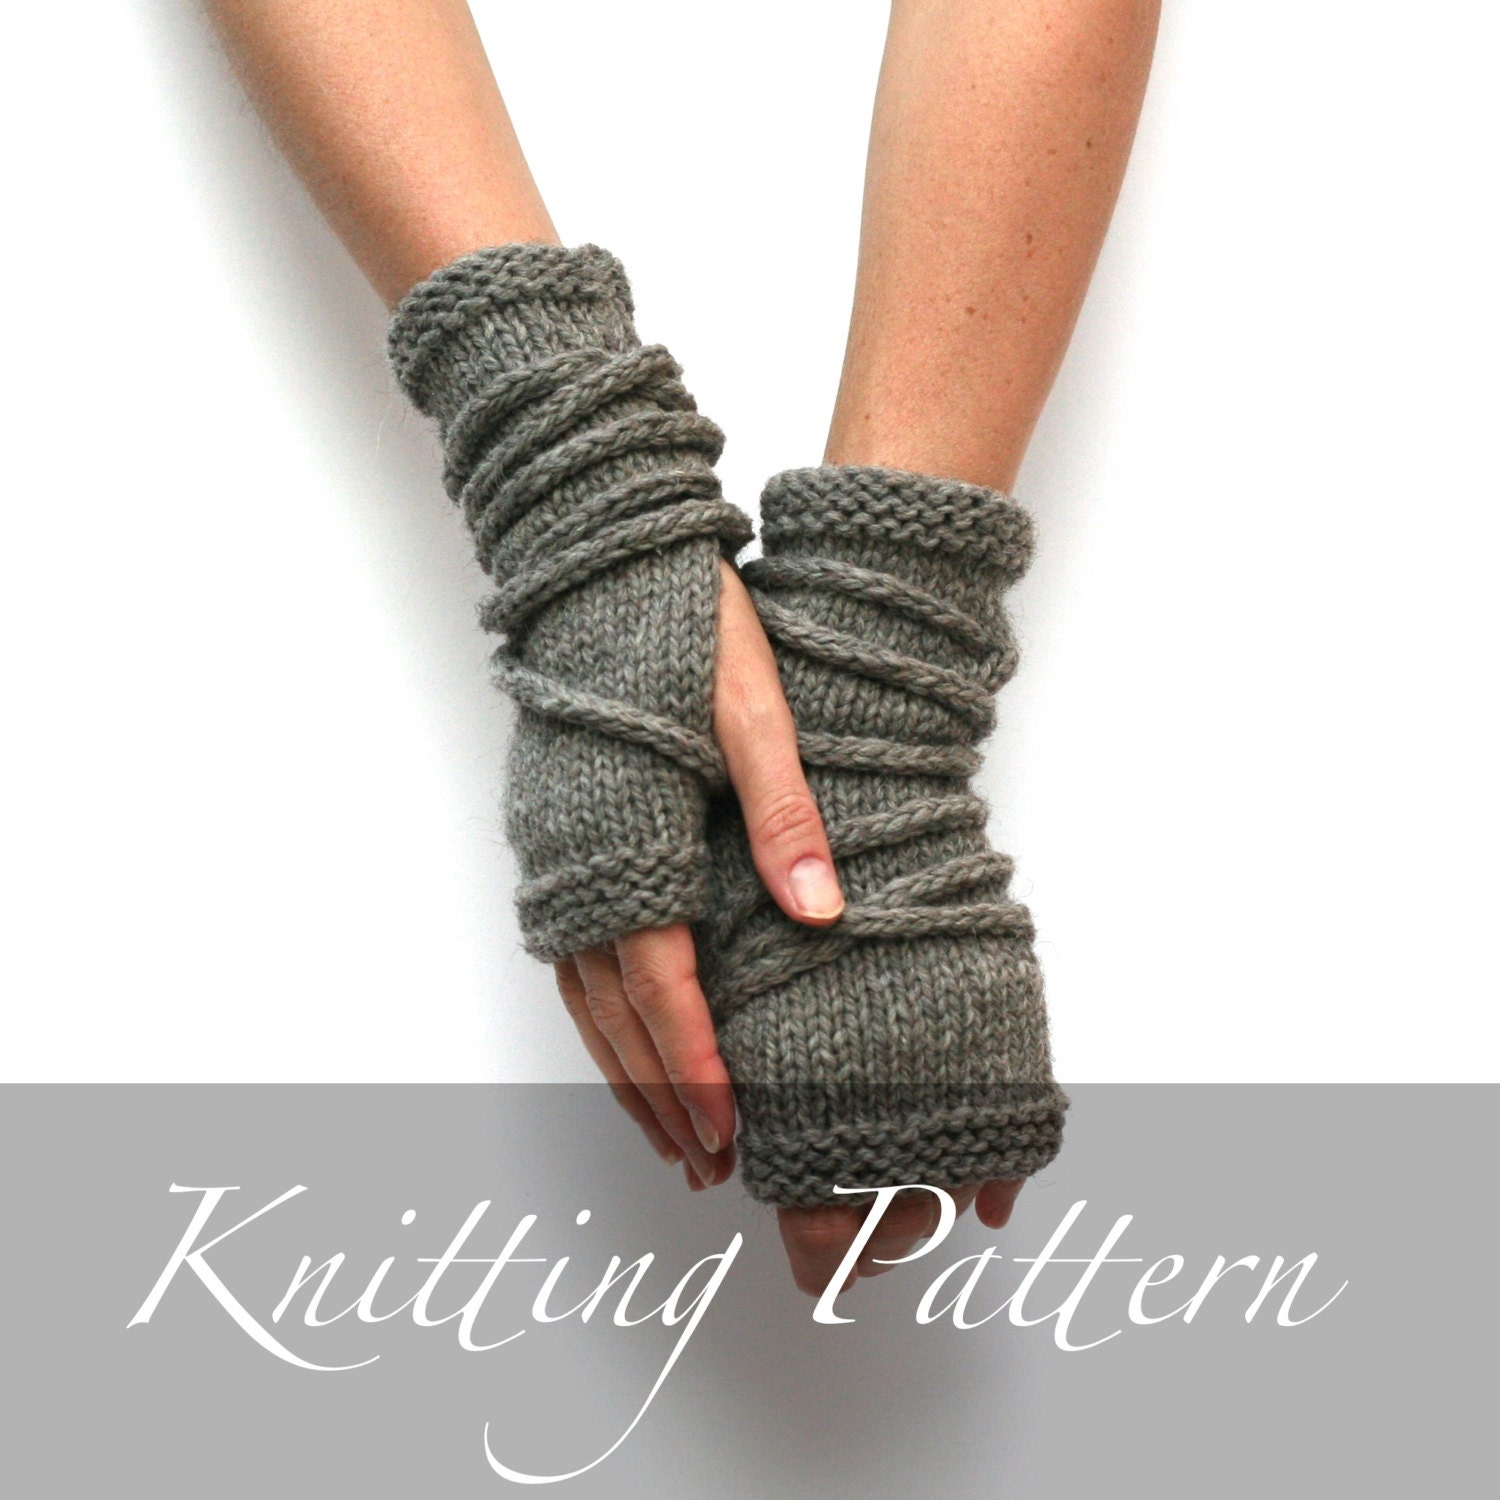 Knitting Pattern - Wrap Gauntlets - Fingerless Gloves Pattern - Knit ...